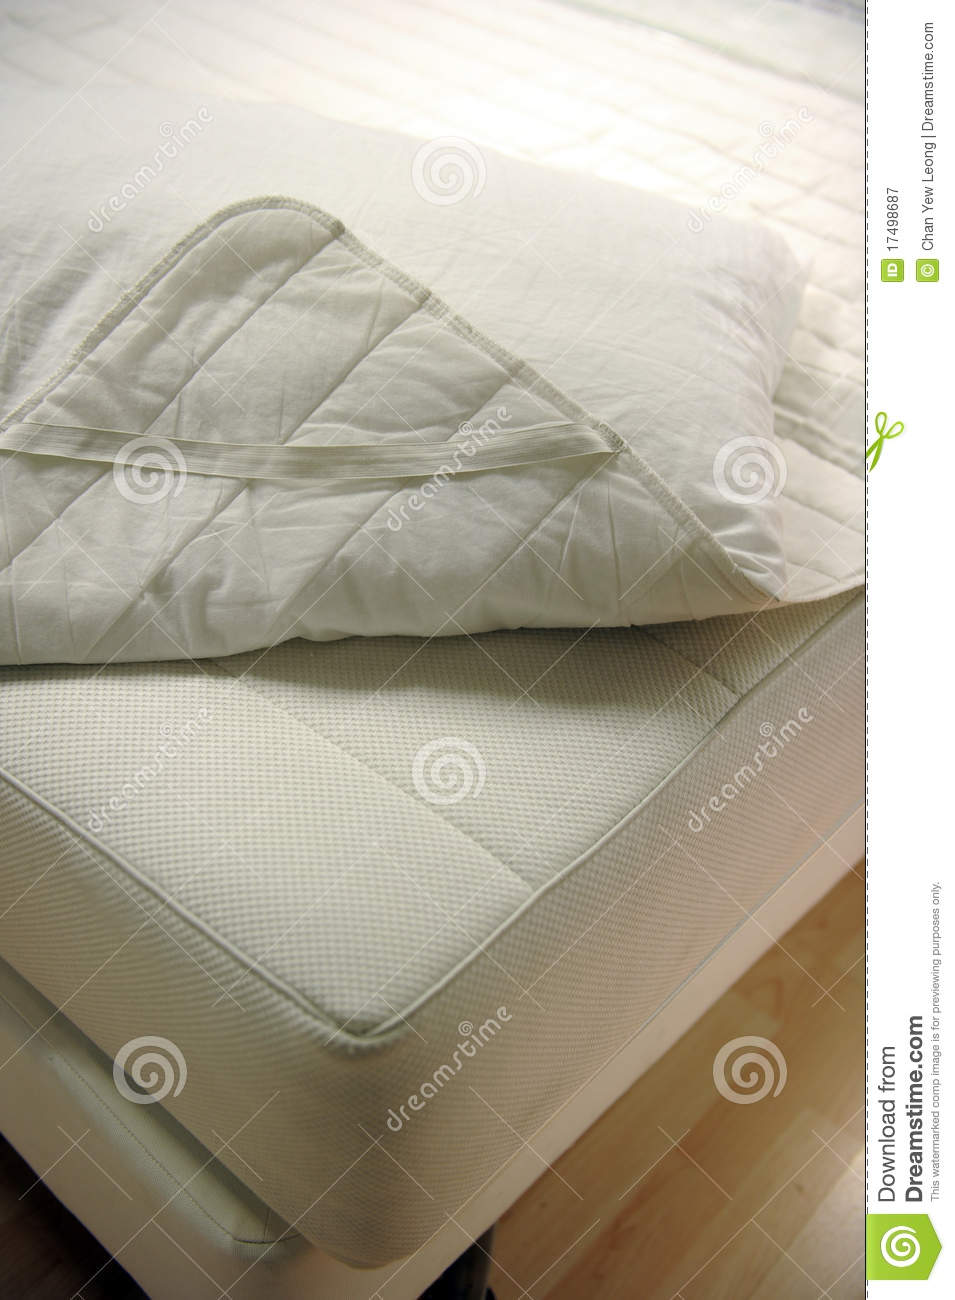 Mattress and bed cover